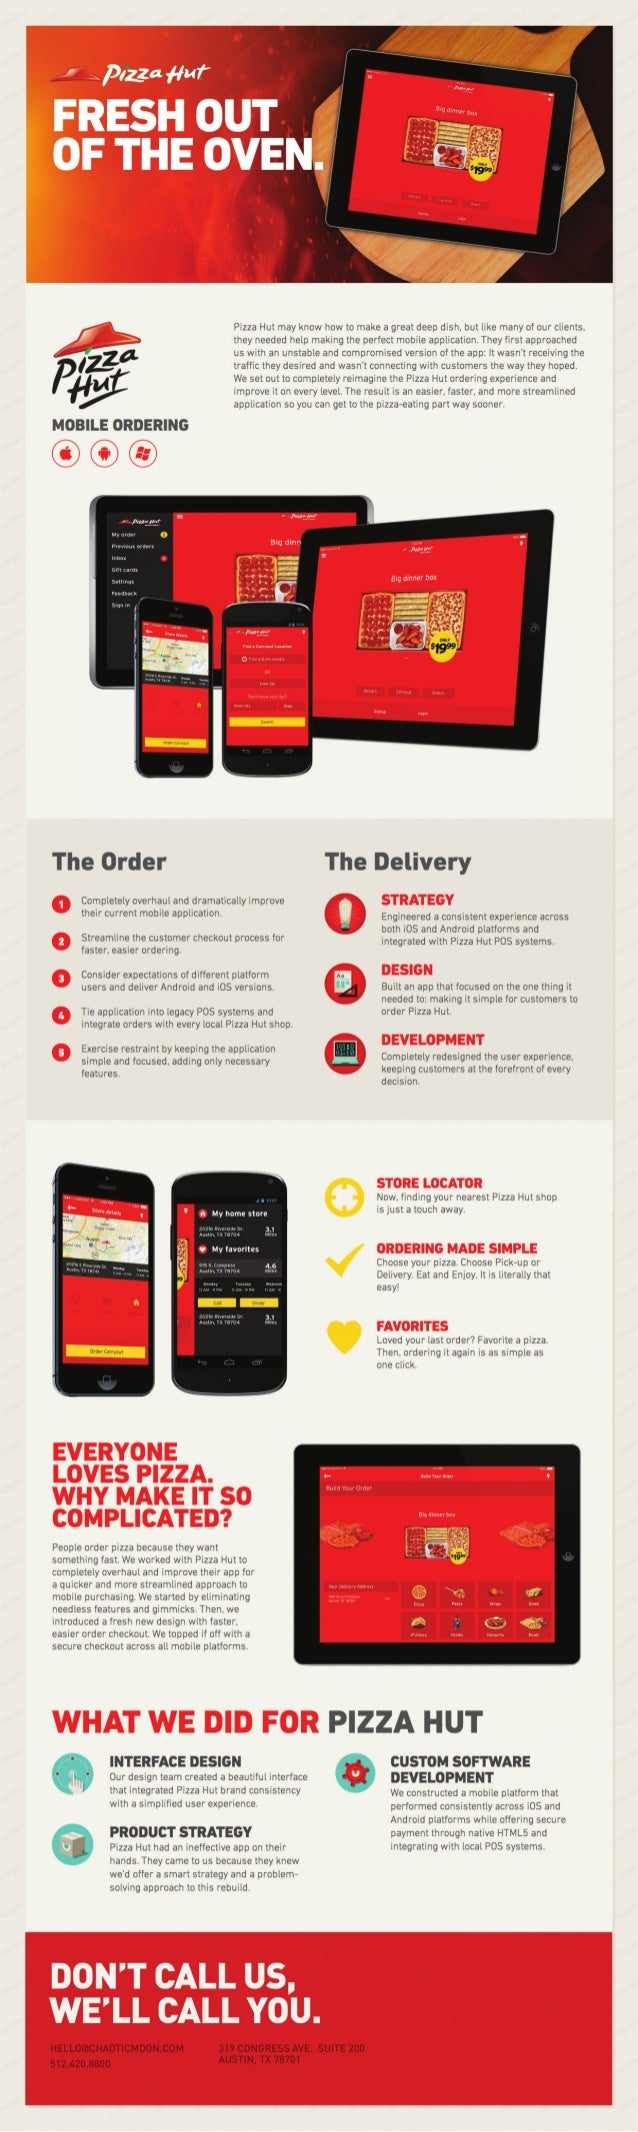 How Pizza Hut Introduced An App That Delivered